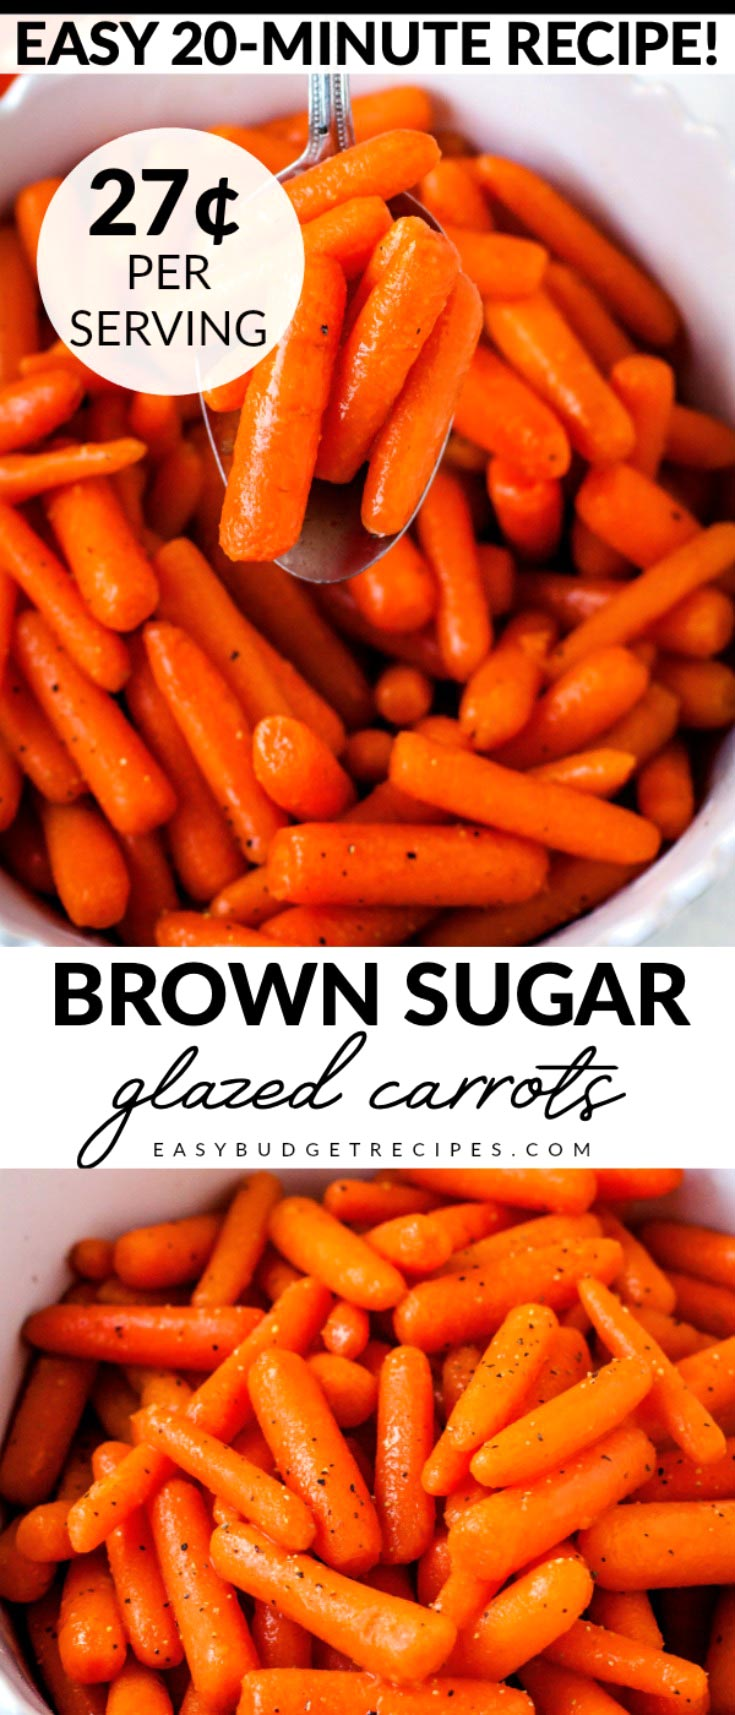 These Brown Sugar Glazed Carrots are an easy side dish that the entire family will love. This recipe takes 20 minutes, serves 8, and costs $2.17 to make. That's just 27¢ per serving. via @easybudgetrecipes